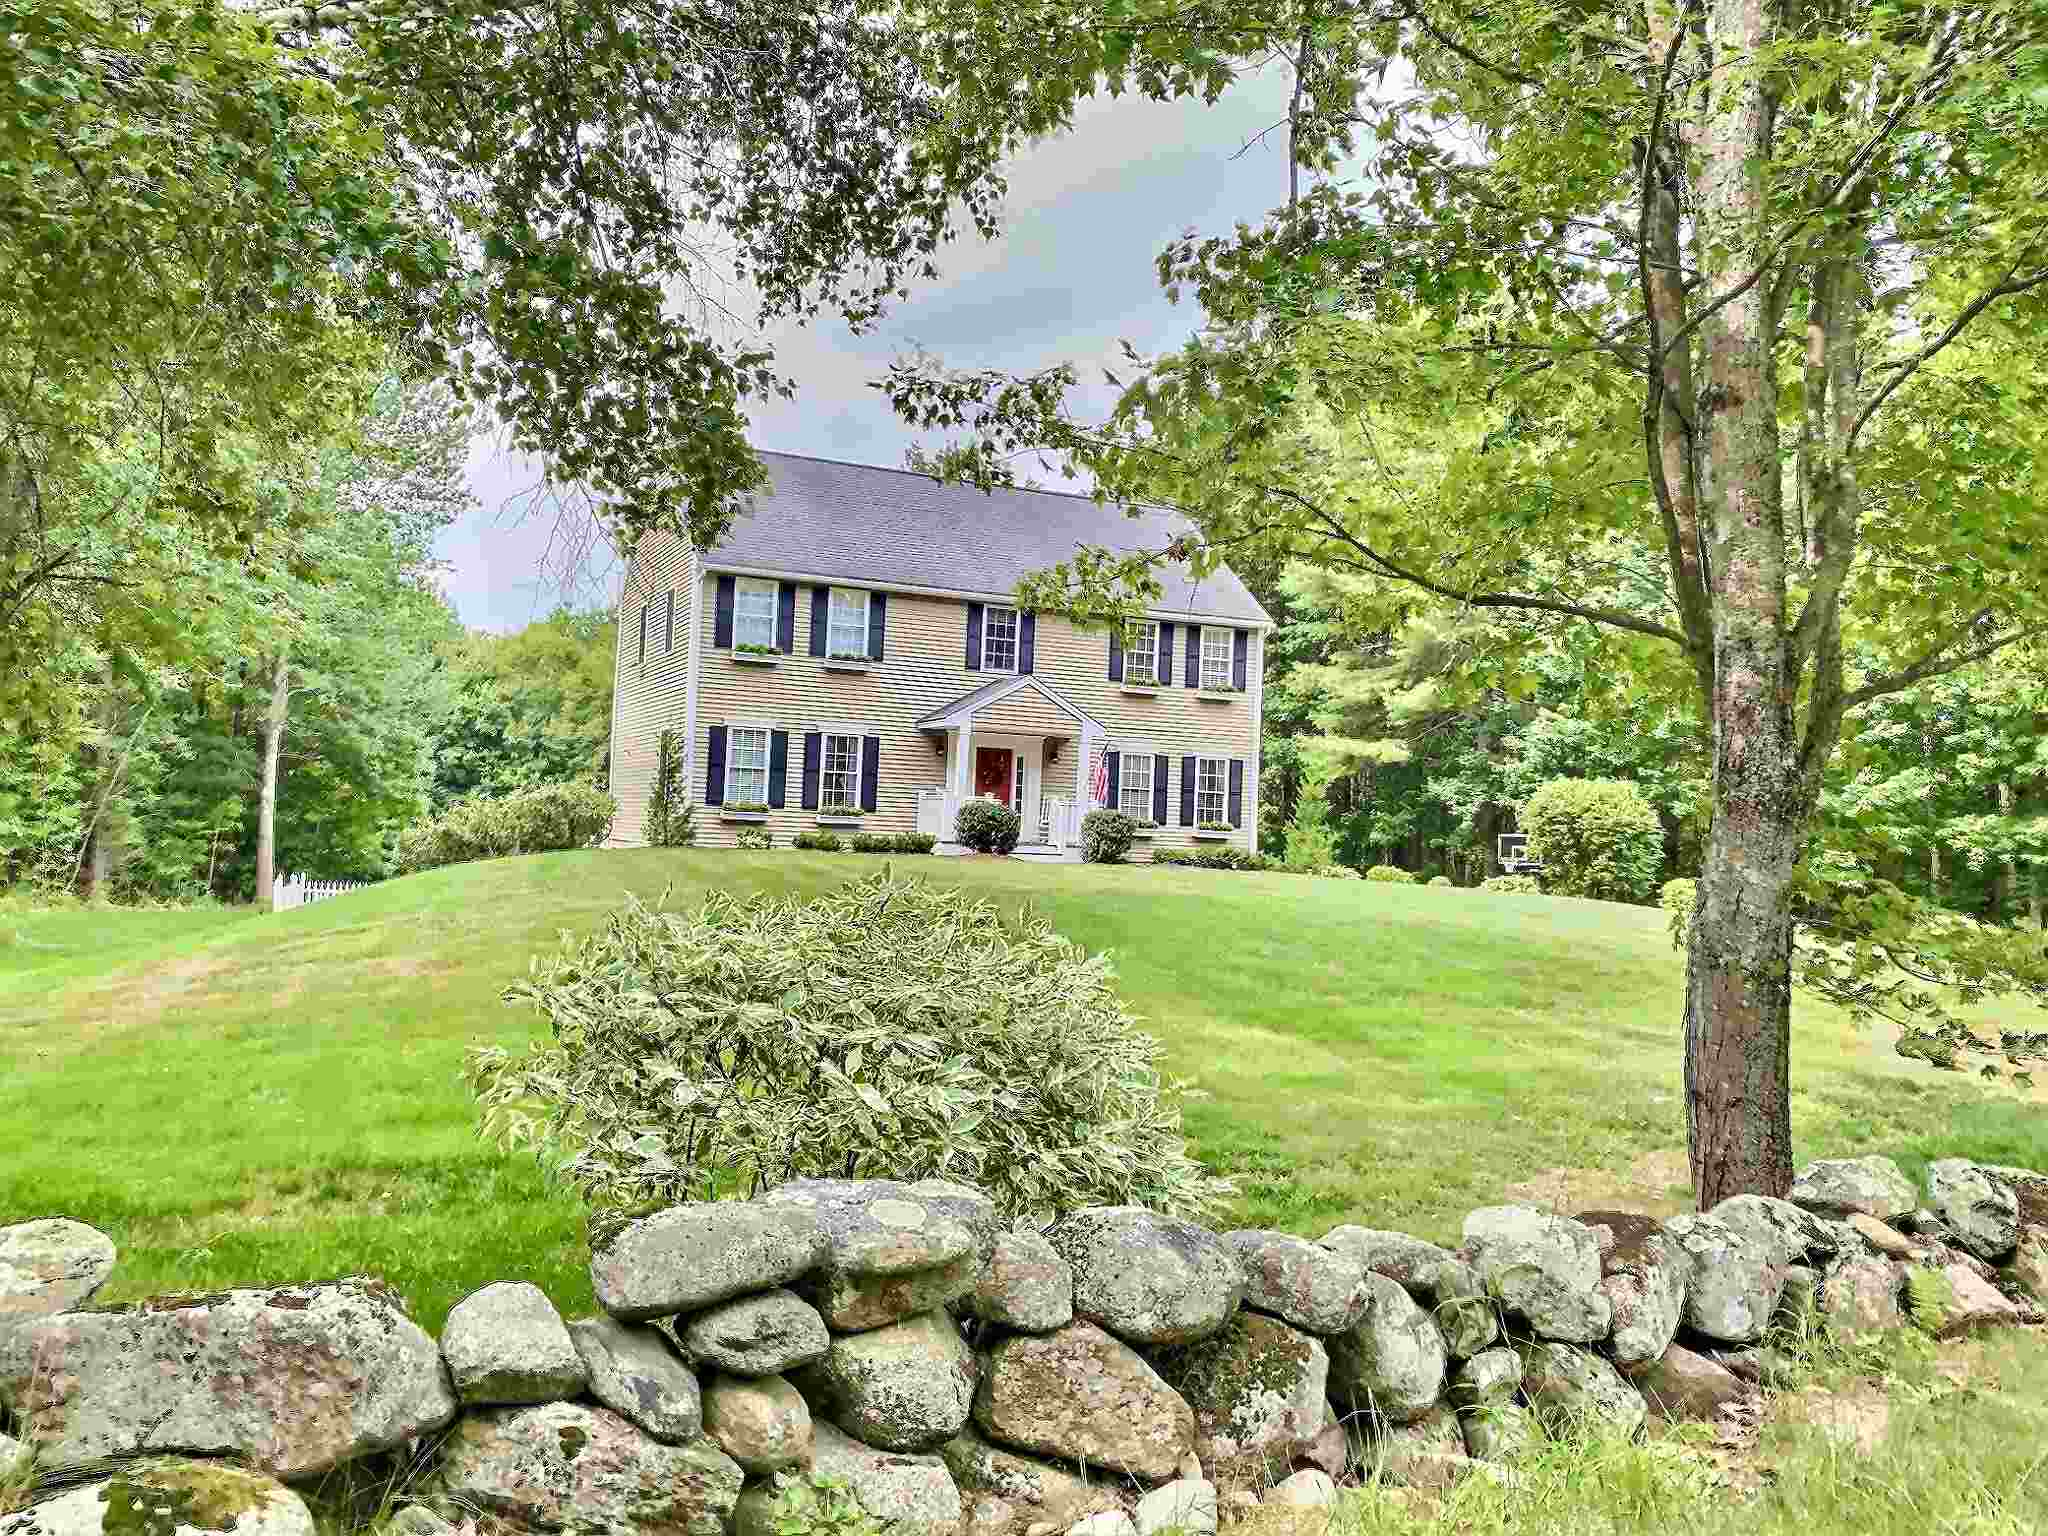 MLS 4825696: 141 Page Road, New London NH